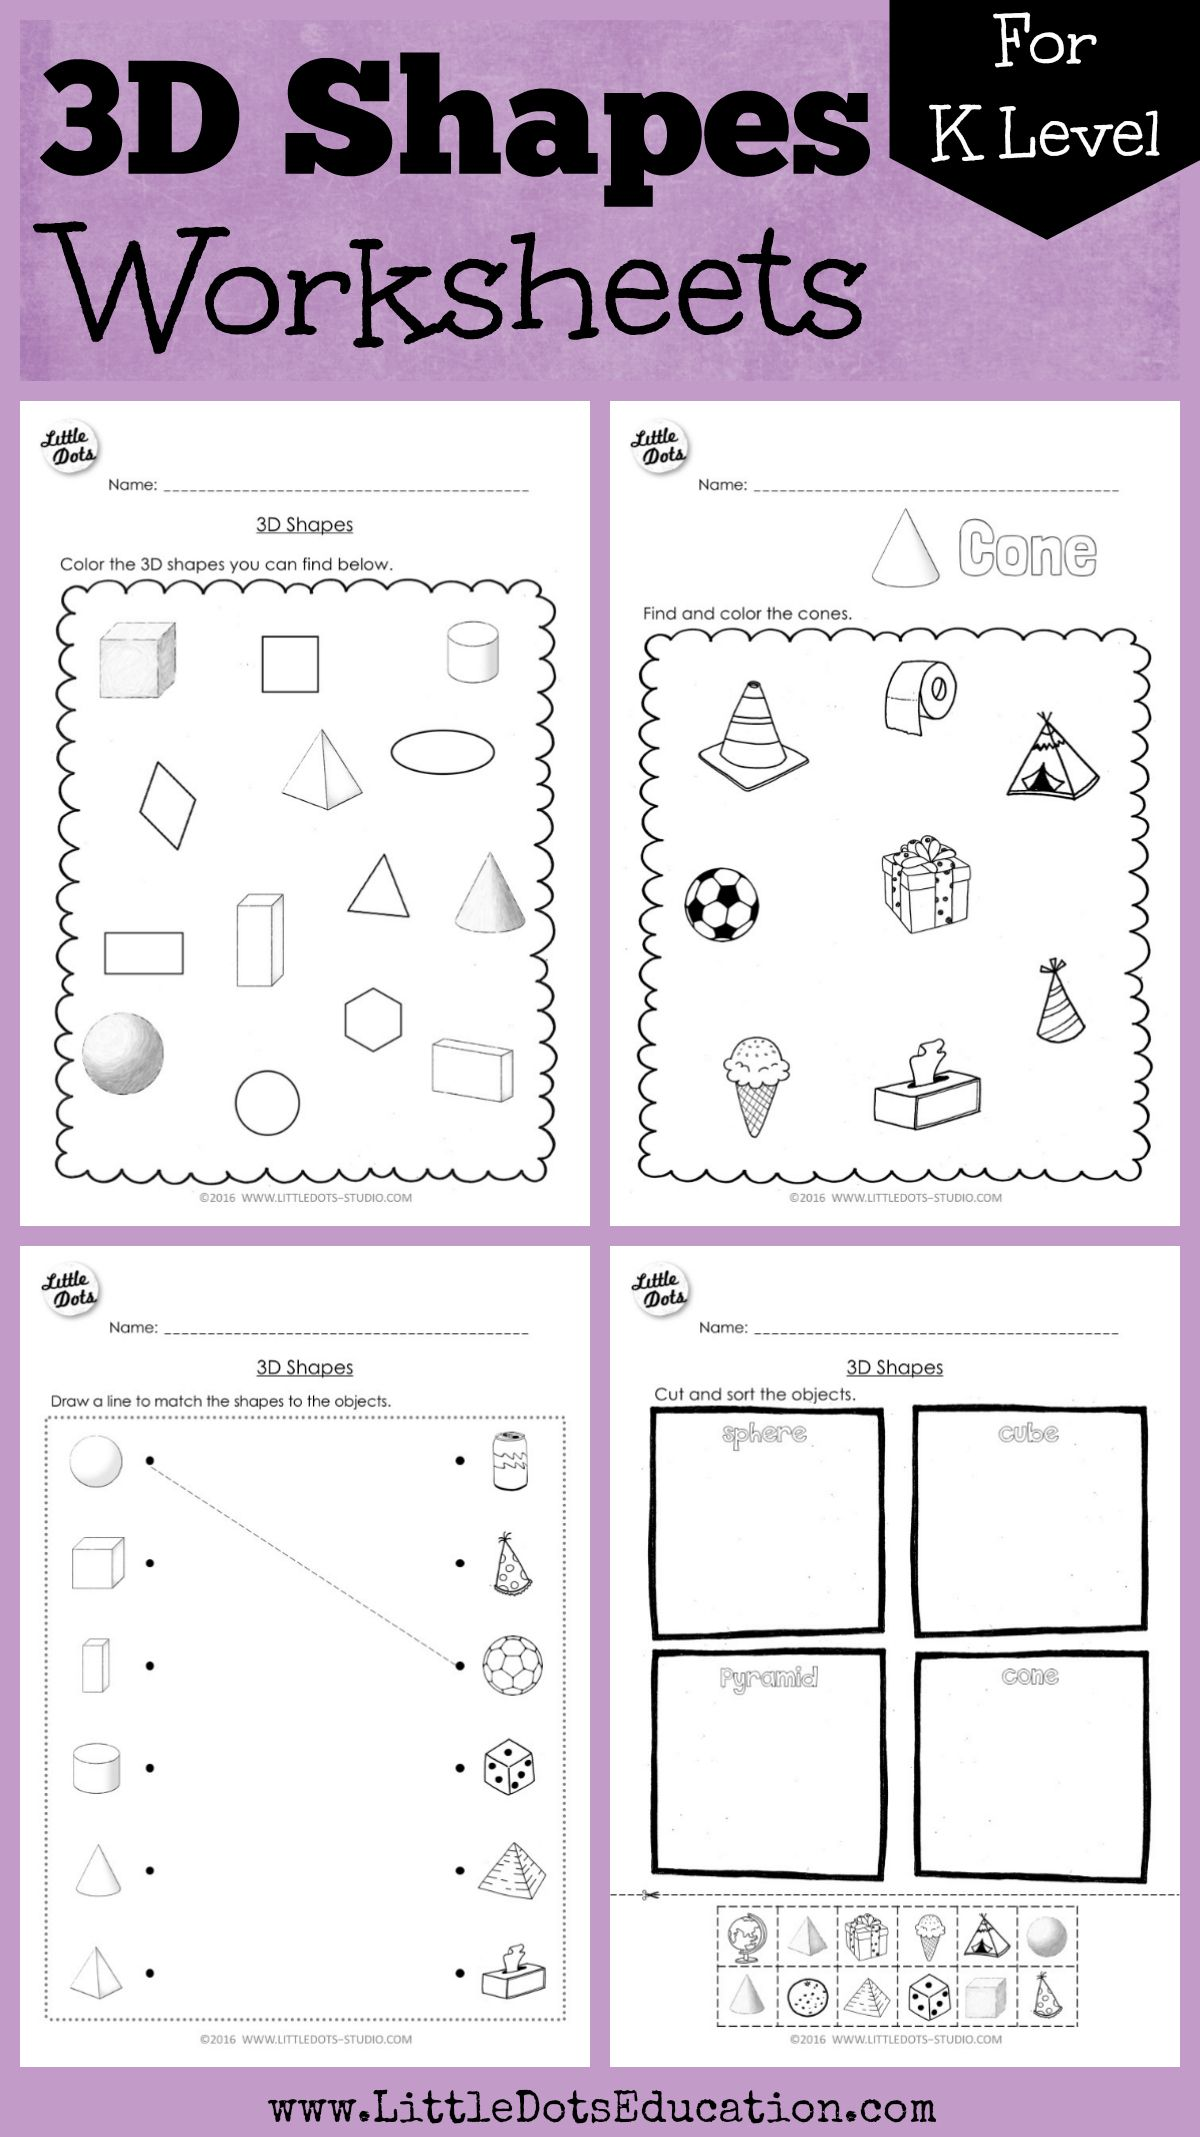 Download 3d Or Solid Shapes Worksheets And Activities On Cube Cylinder Cone Pyramid Cuboid